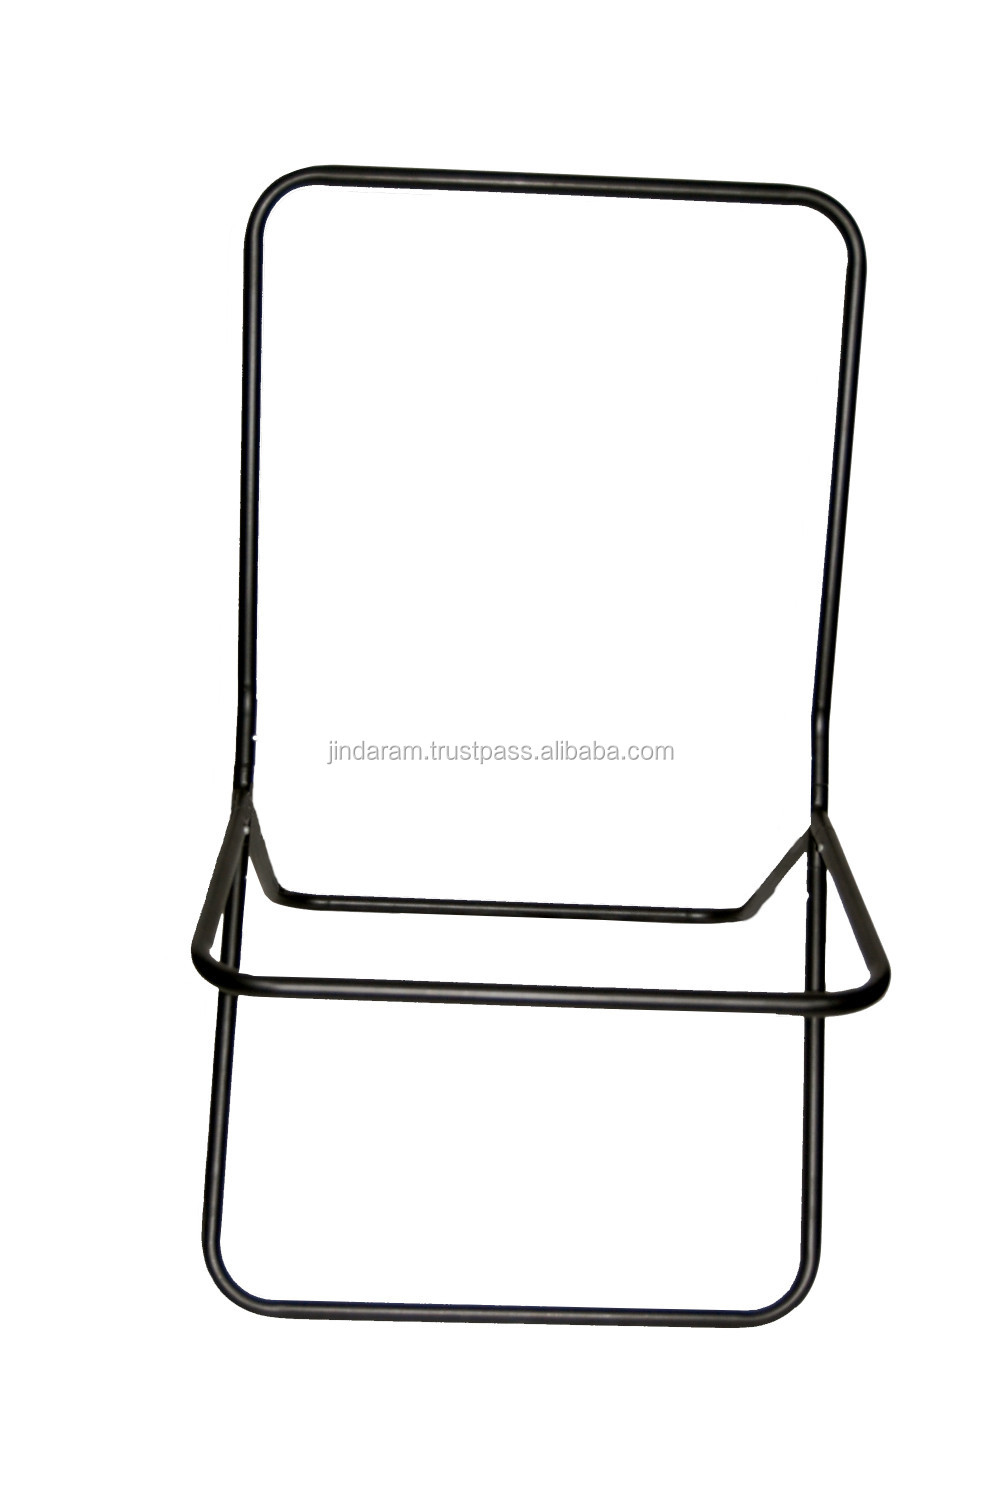 Large Recliner Butterfly Chair Stand.JPG